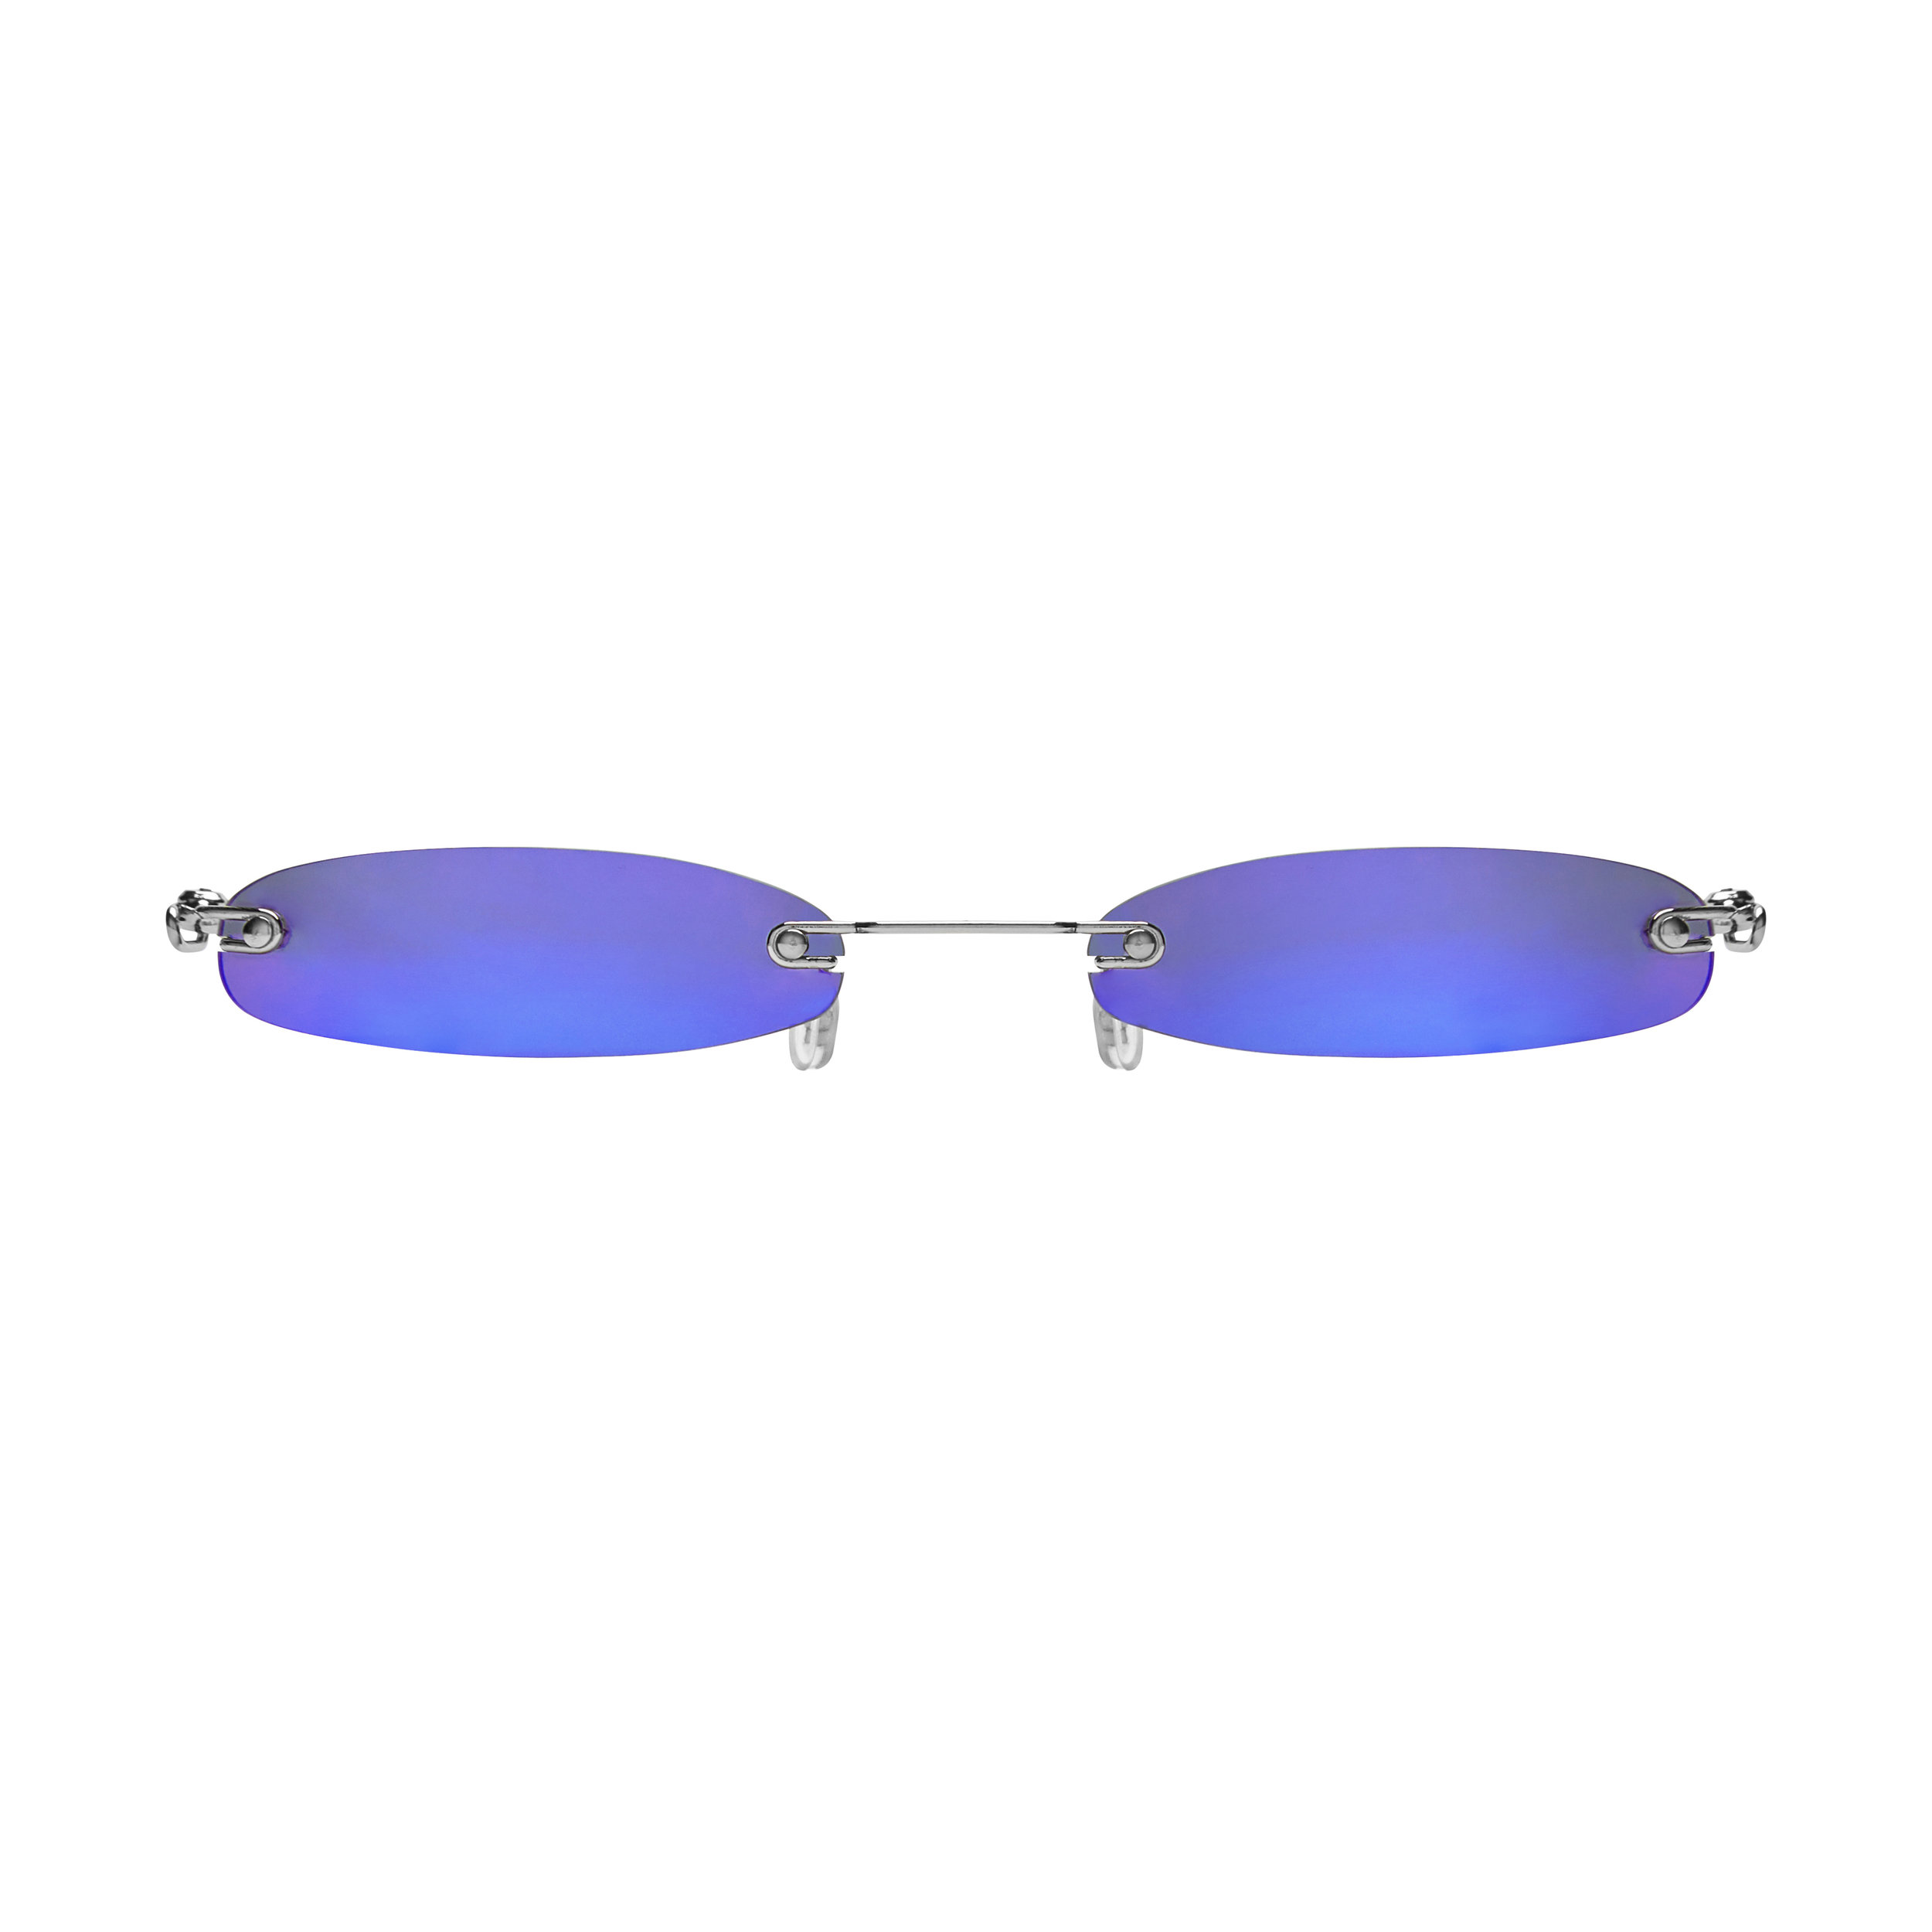 ChristianahJones_Glasses_ReflectivePurple_01.jpg